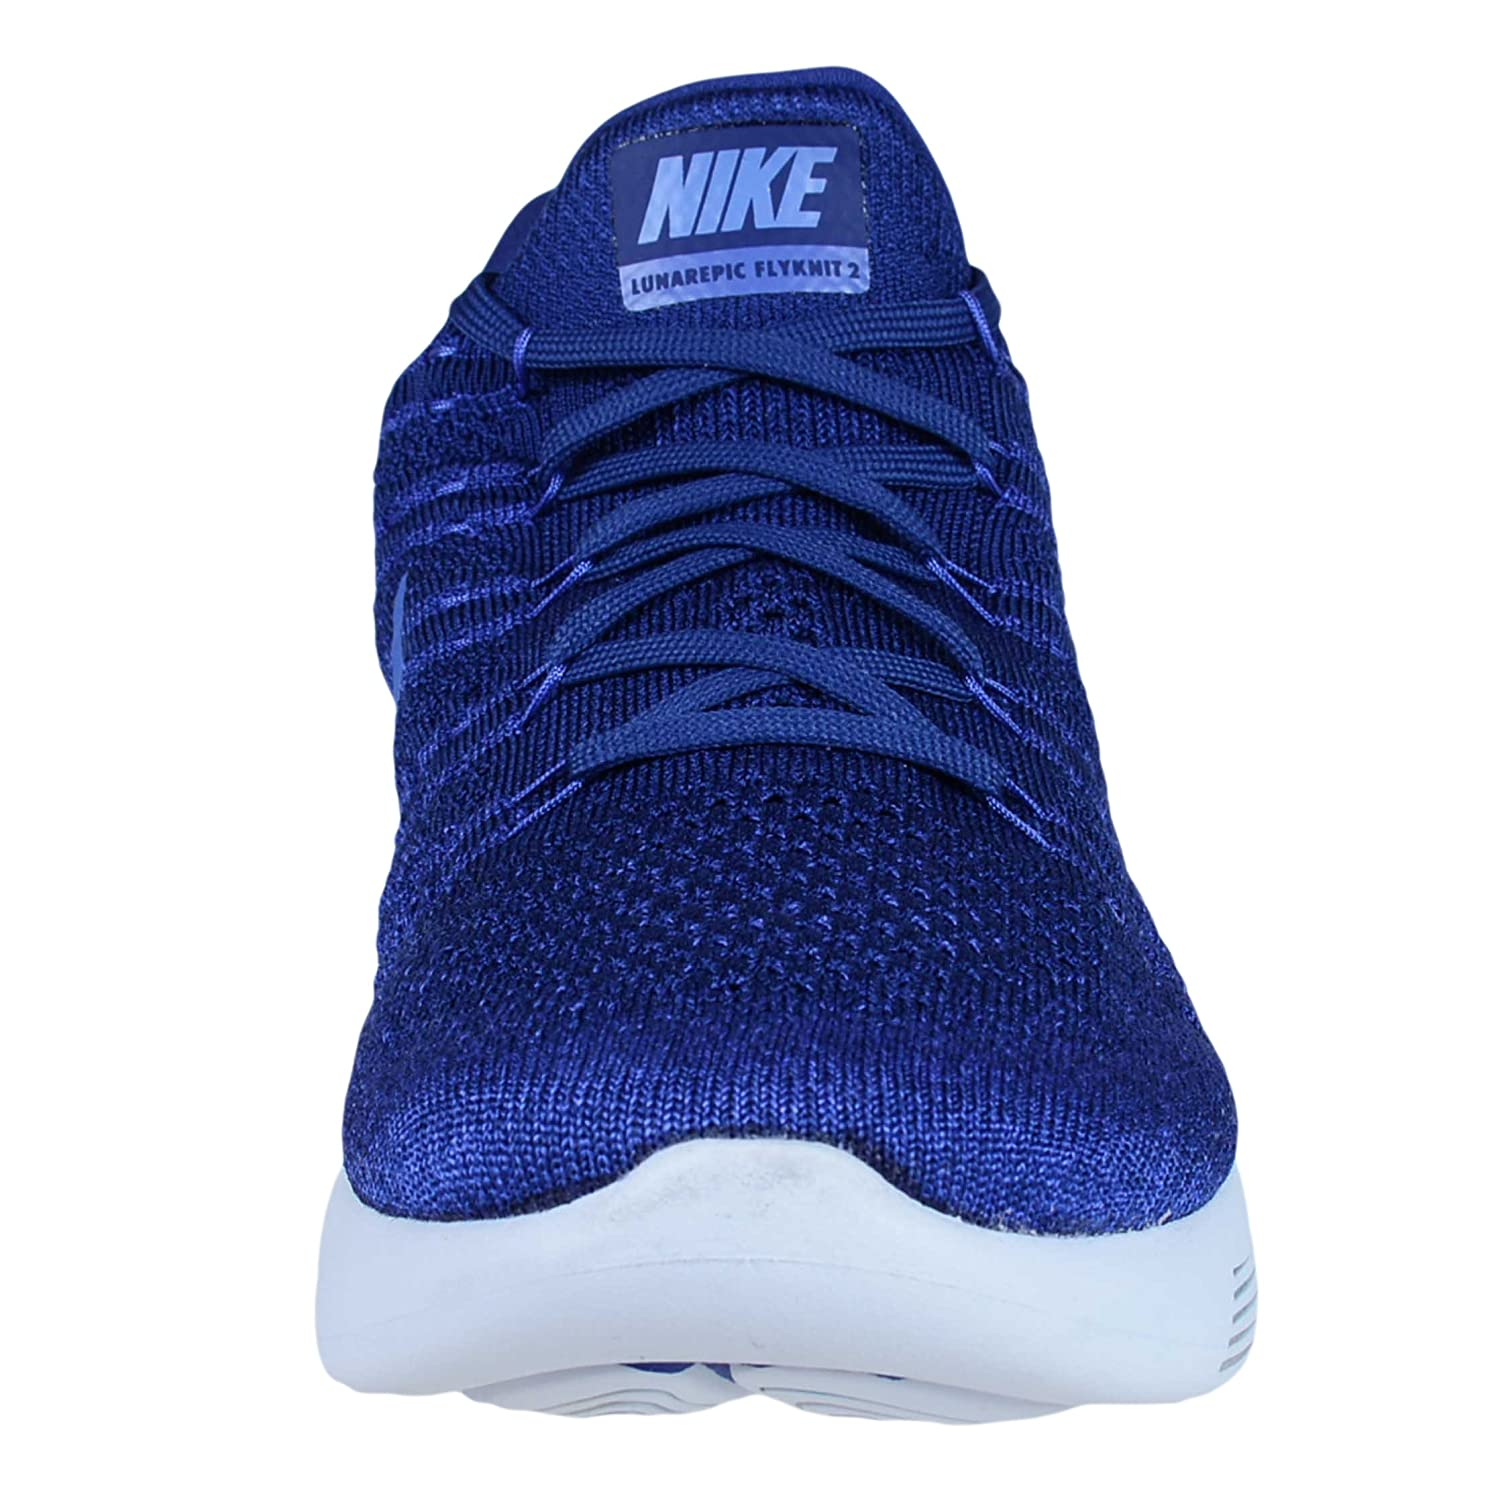 new arrival c7567 5c027 Nike Lunarepic Low Flyknit 2, Scarpe Running Uomo  Amazon.it  Scarpe e borse